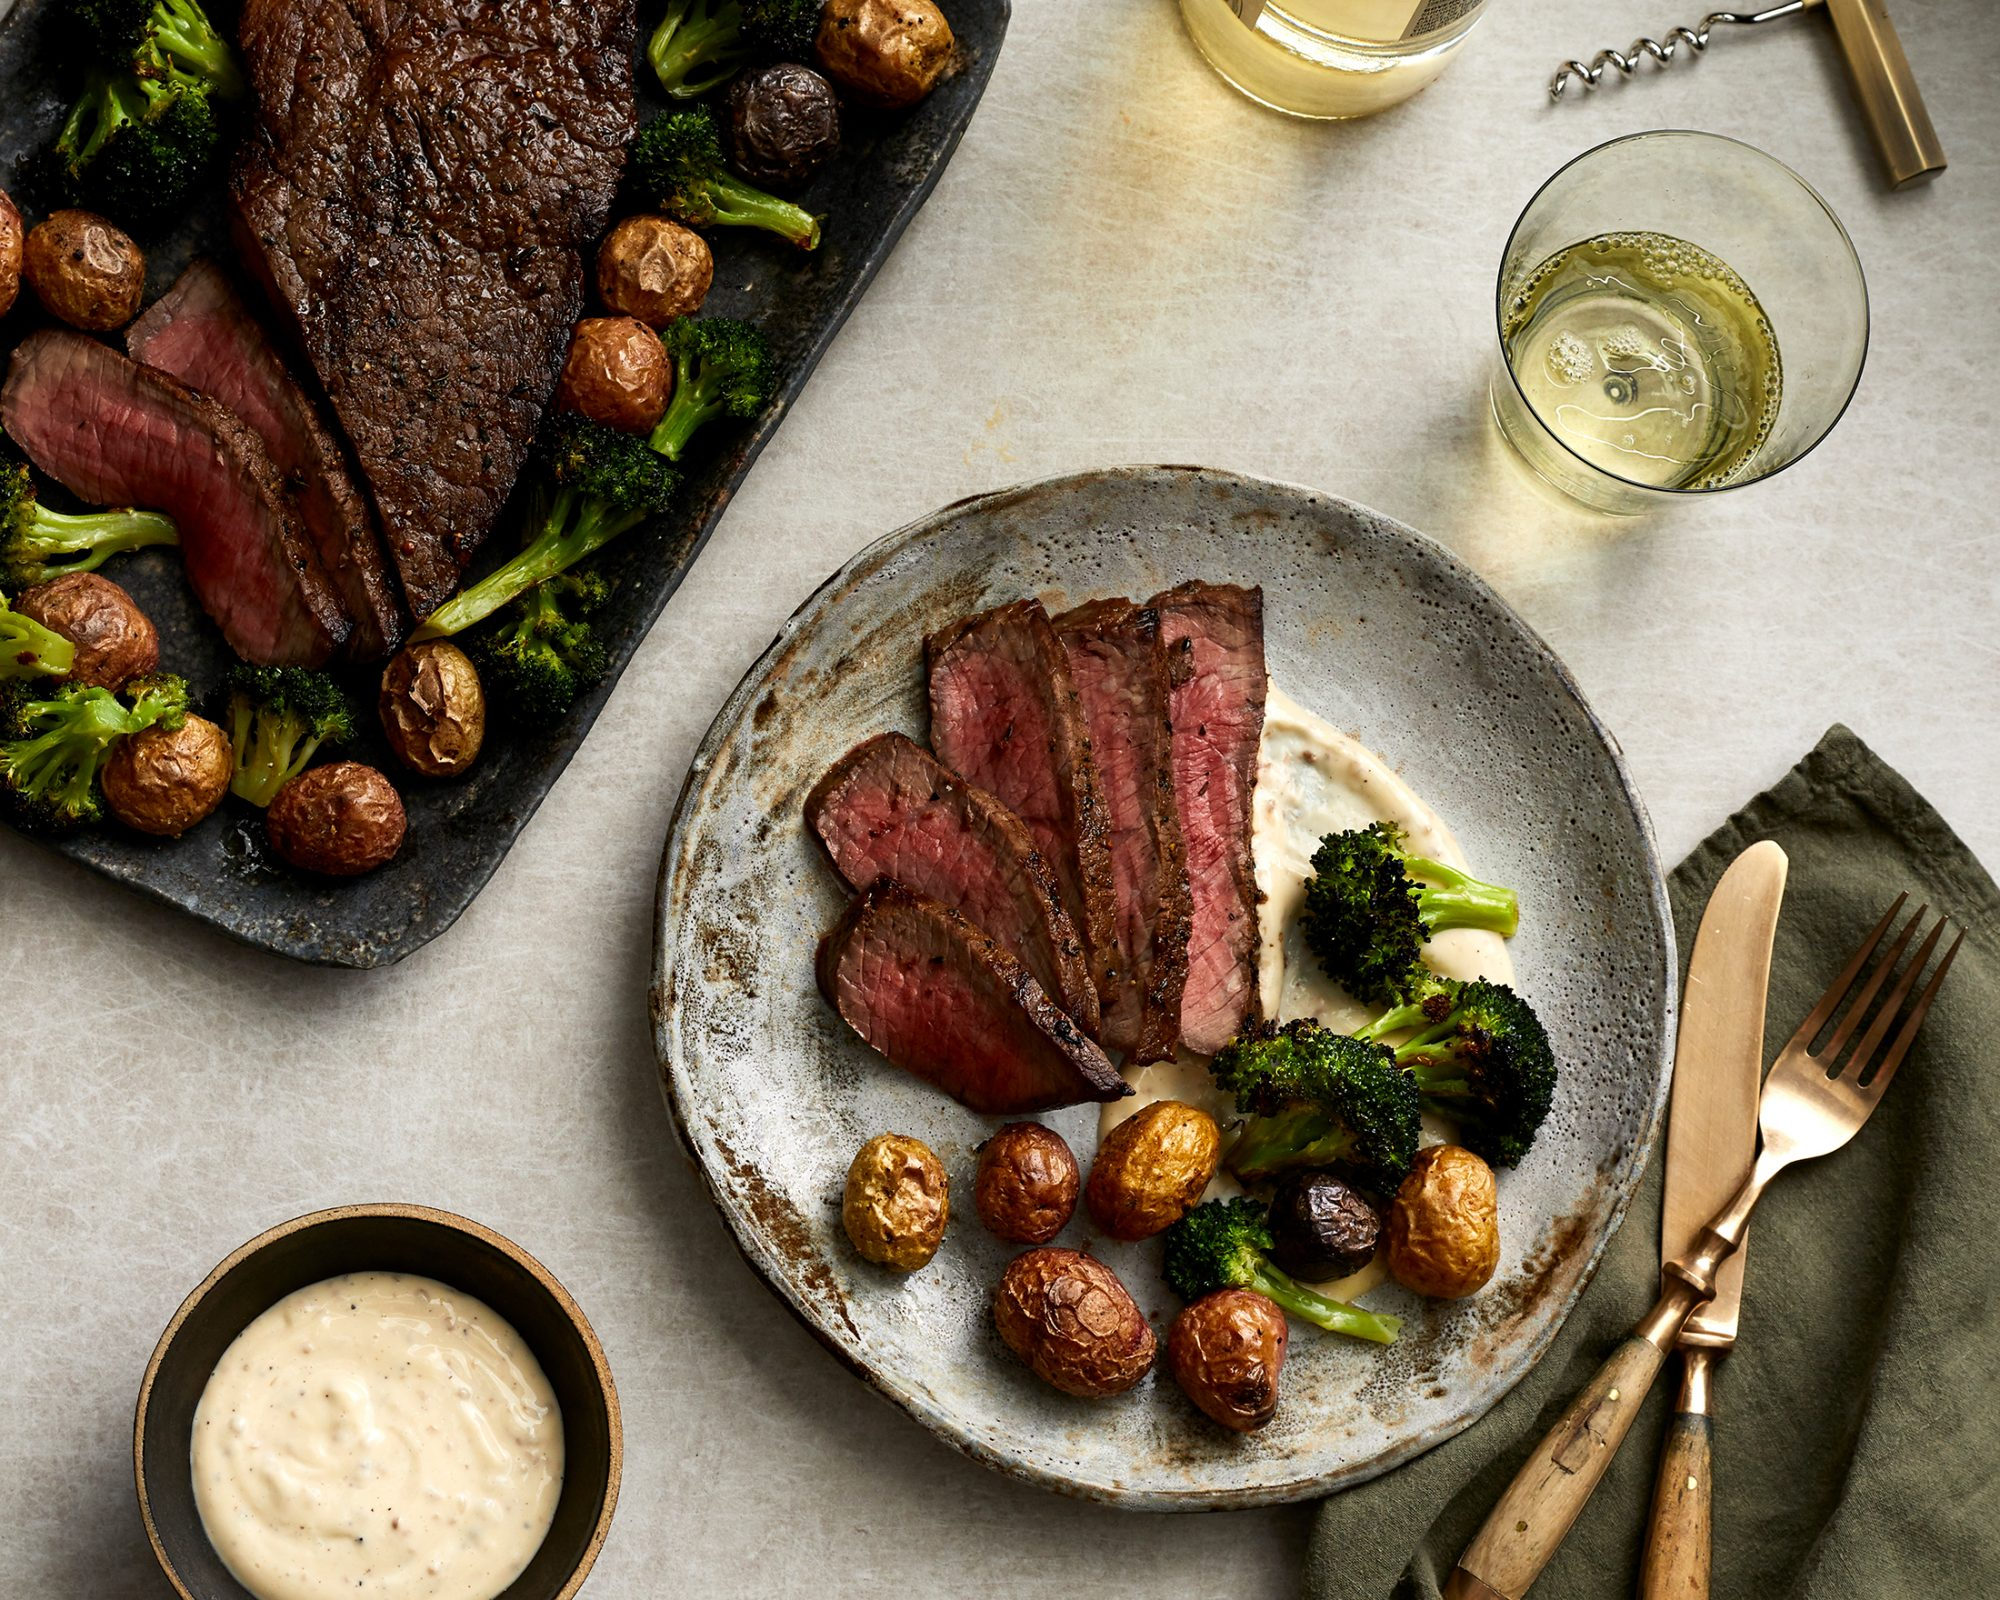 Marinated London Broil with Potatoes, Broccoli, and Roasted Garlic Aioli image